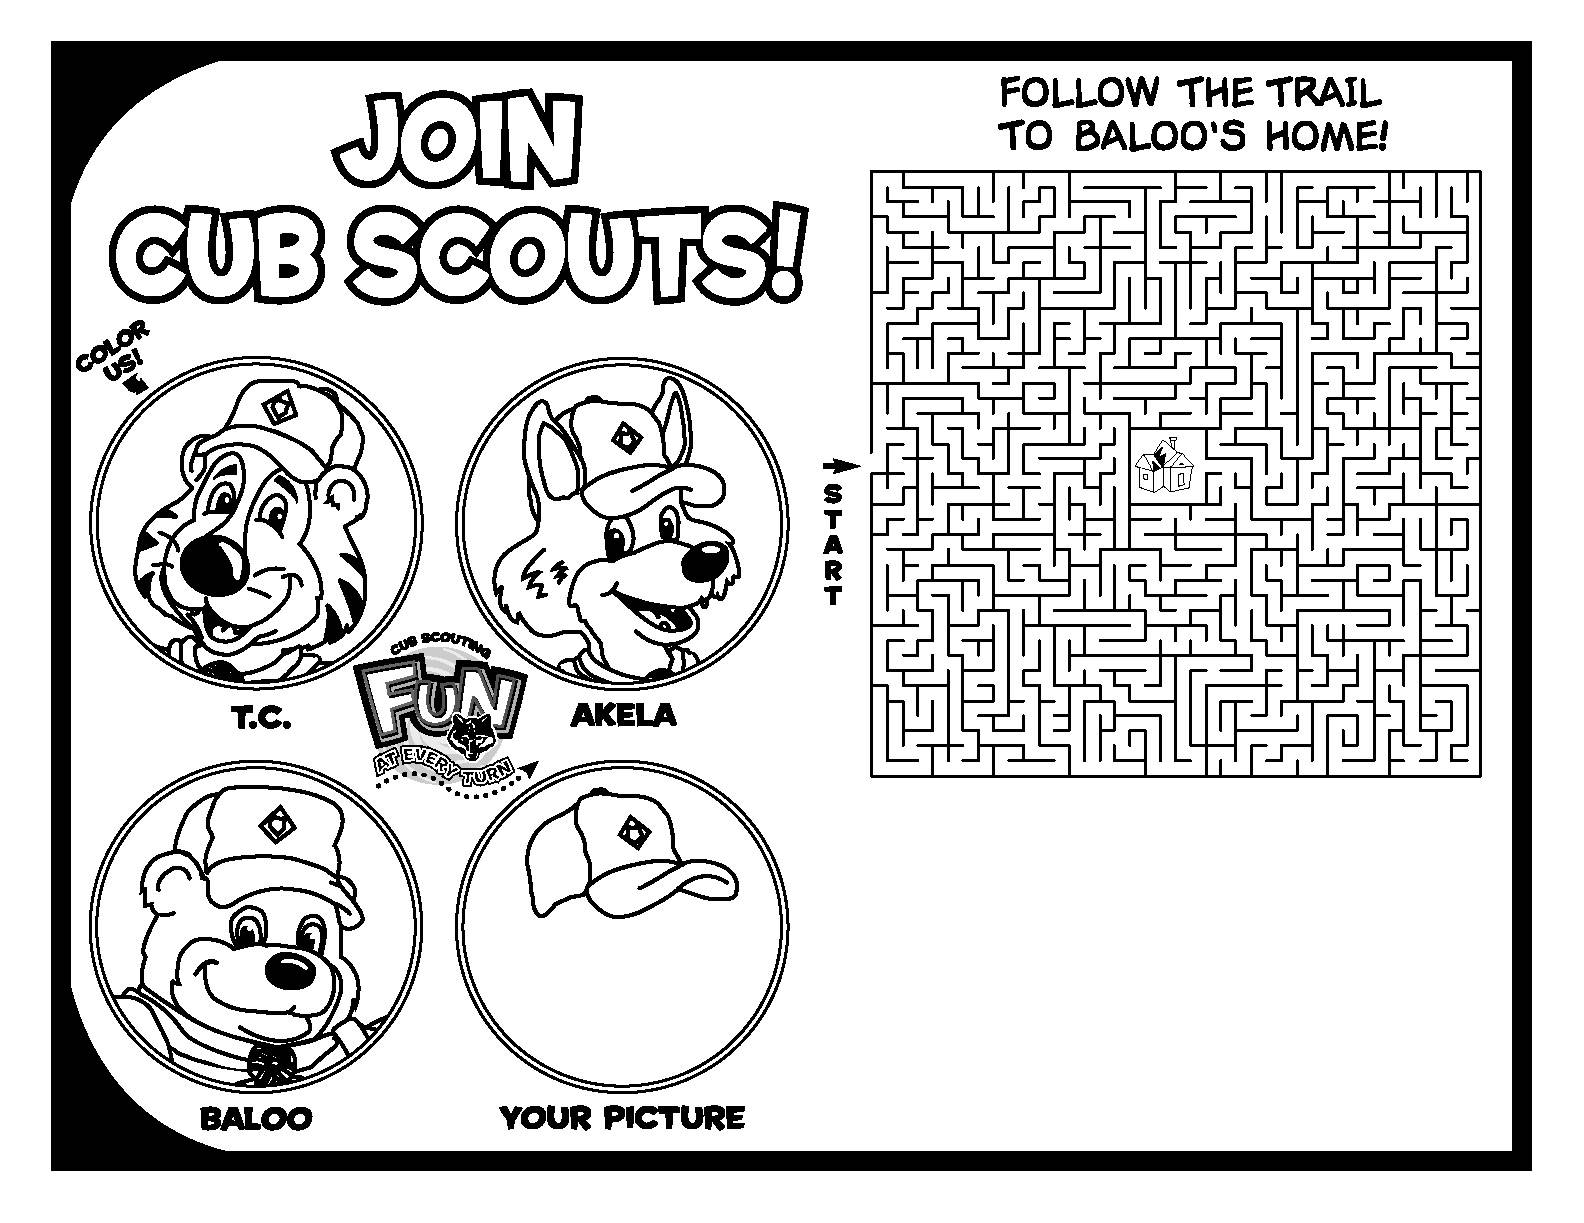 Tiger Cub Scout Coloring Pages - Democraciaejustica